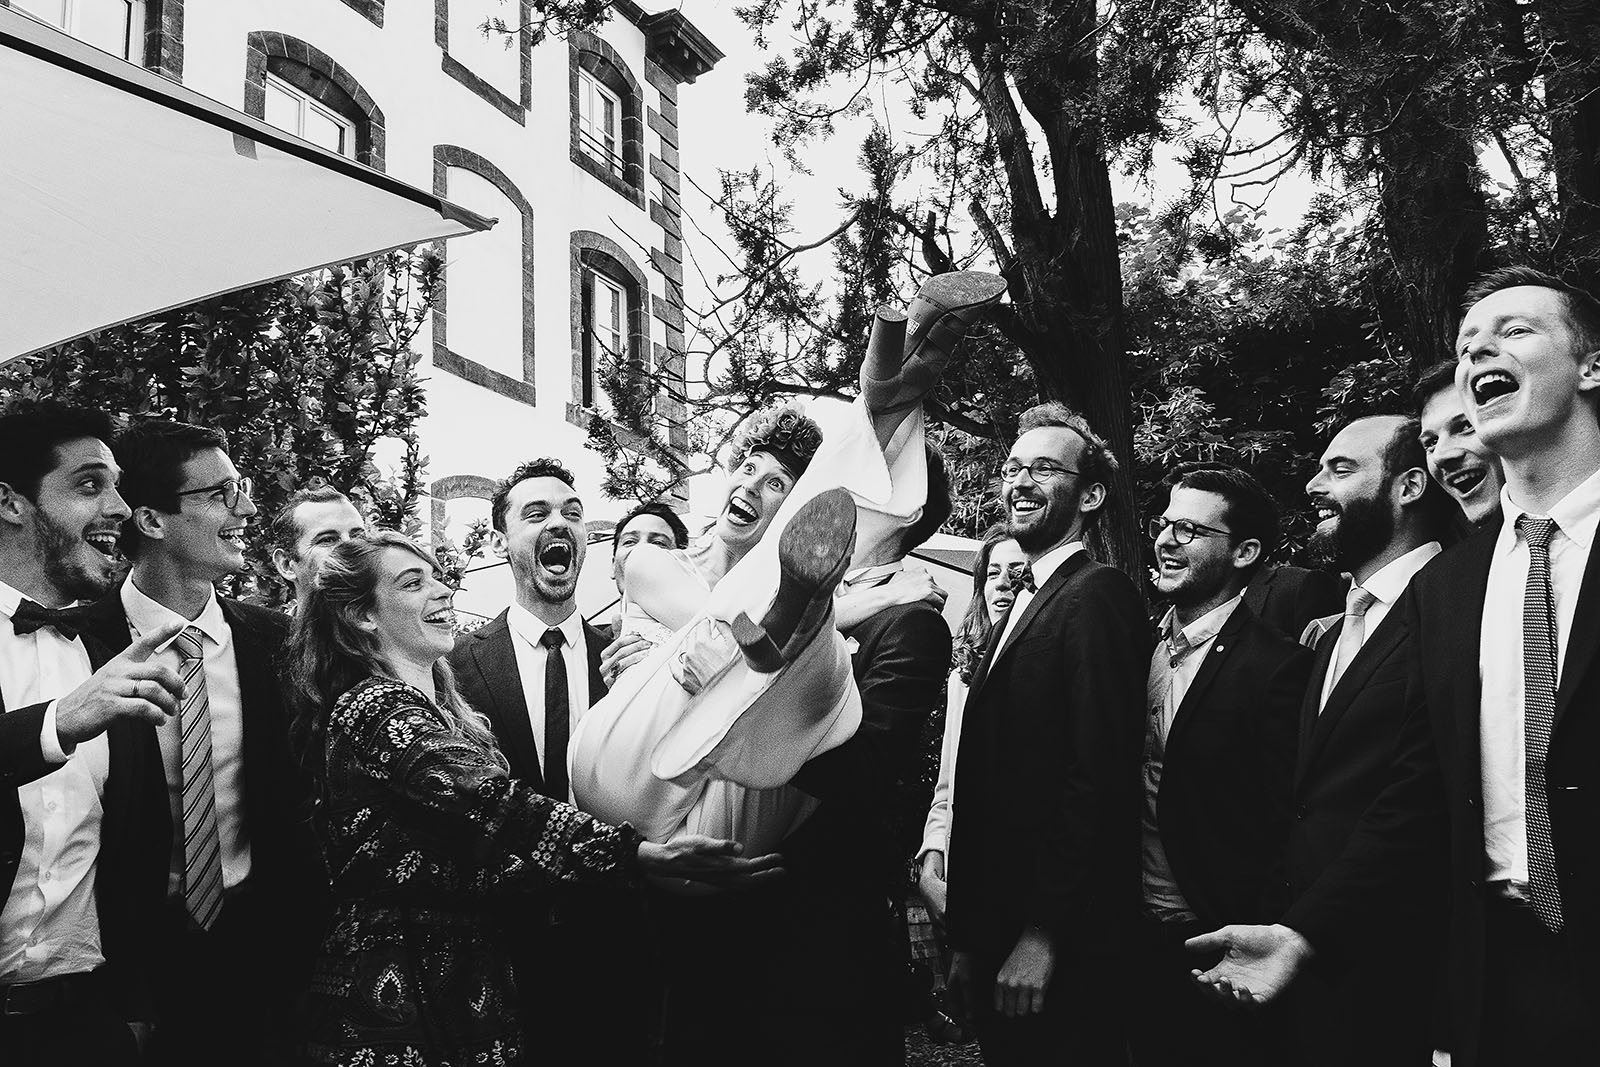 Photographe de mariage à Clermont Ferrand Photo de groupe originale